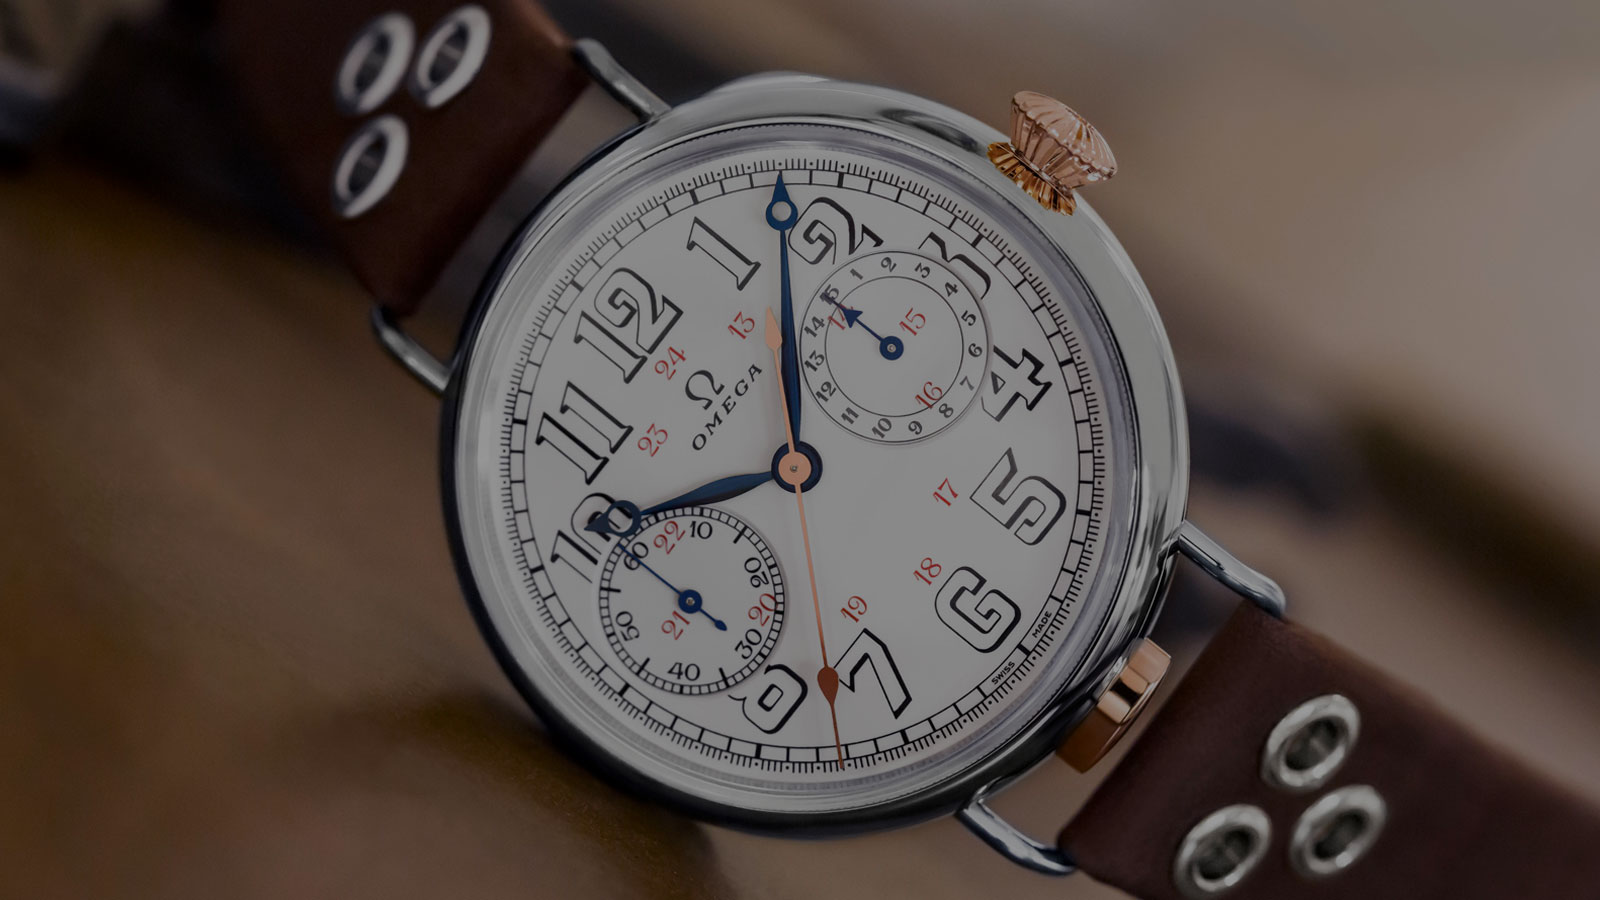 Specialities First Omega Wrist-chronograph Watches - Video - 53959